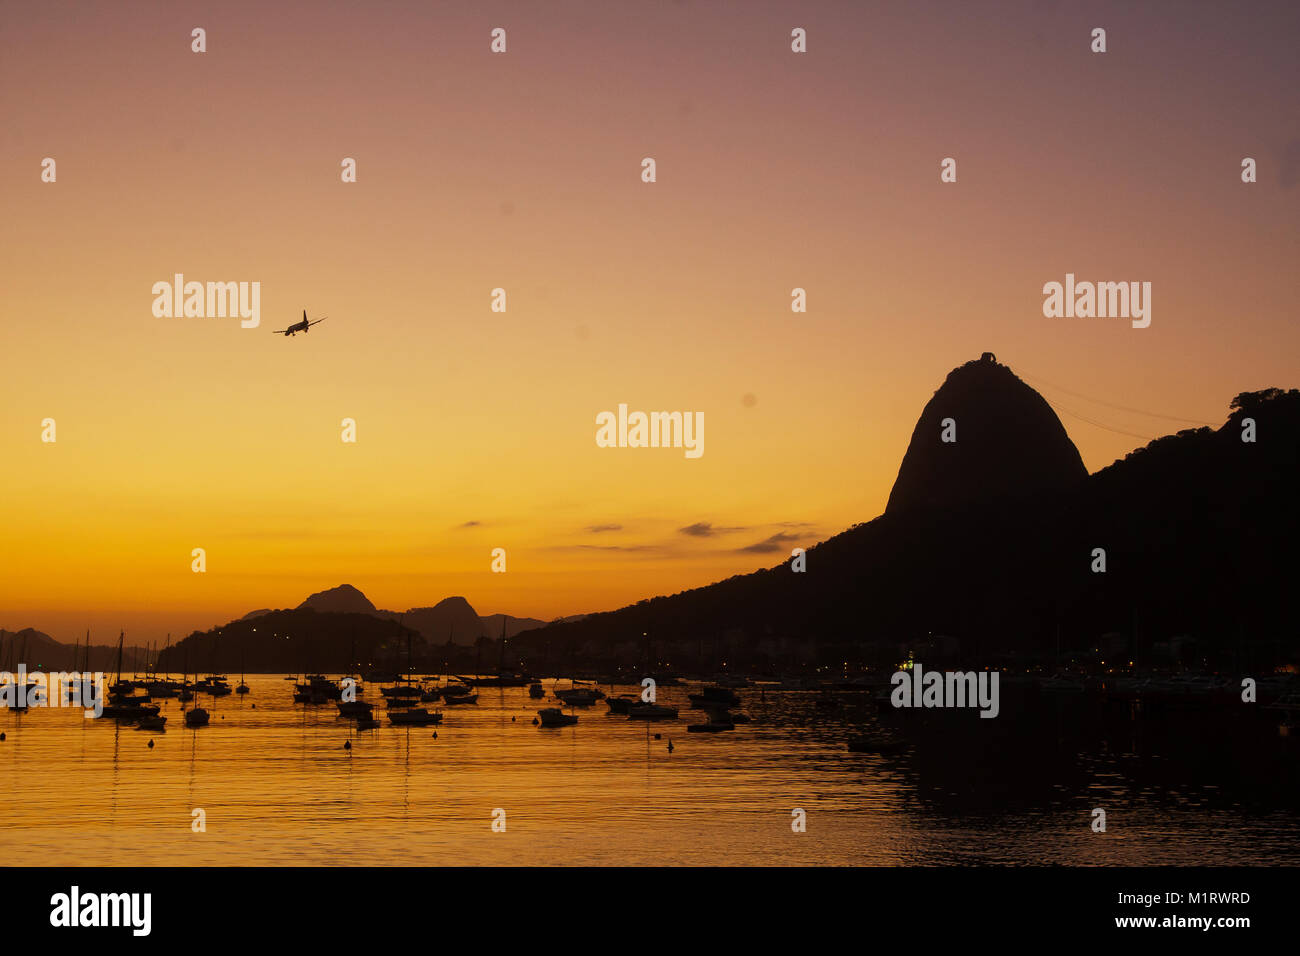 Airplane arriving an passing near the Sugarloaf at sunrise, Rio de Janeiro, Brazil - Stock Image